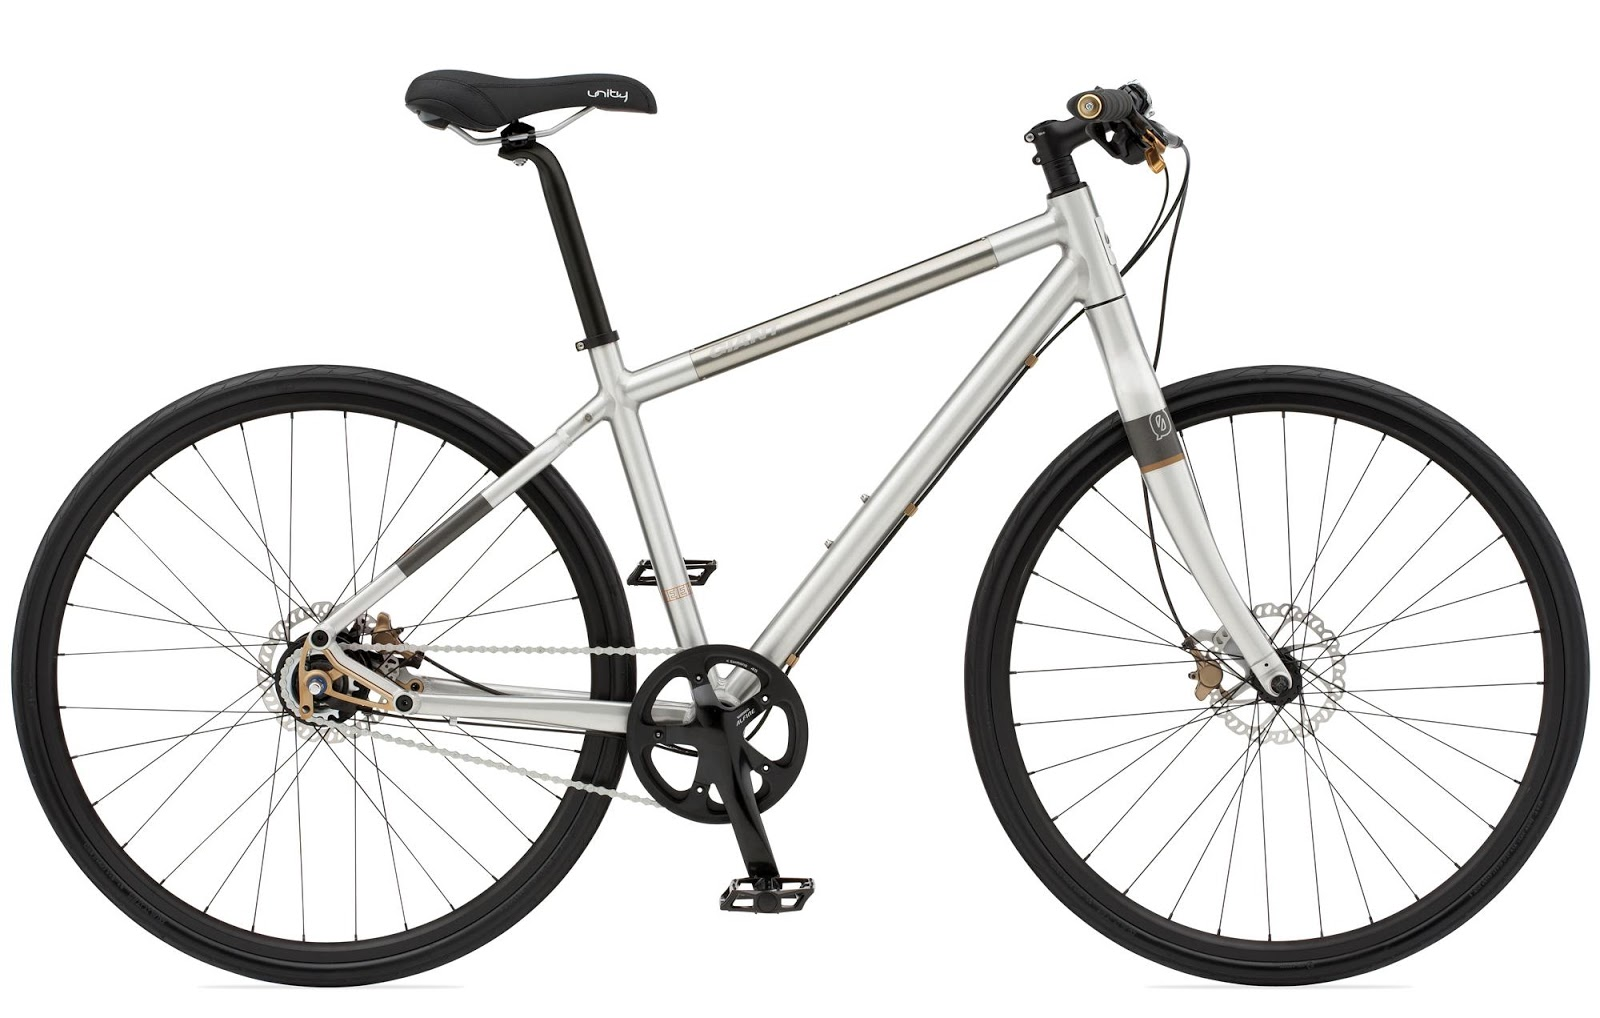 Commuter Bikes With Disc Brakes Hydraulic disc brakes